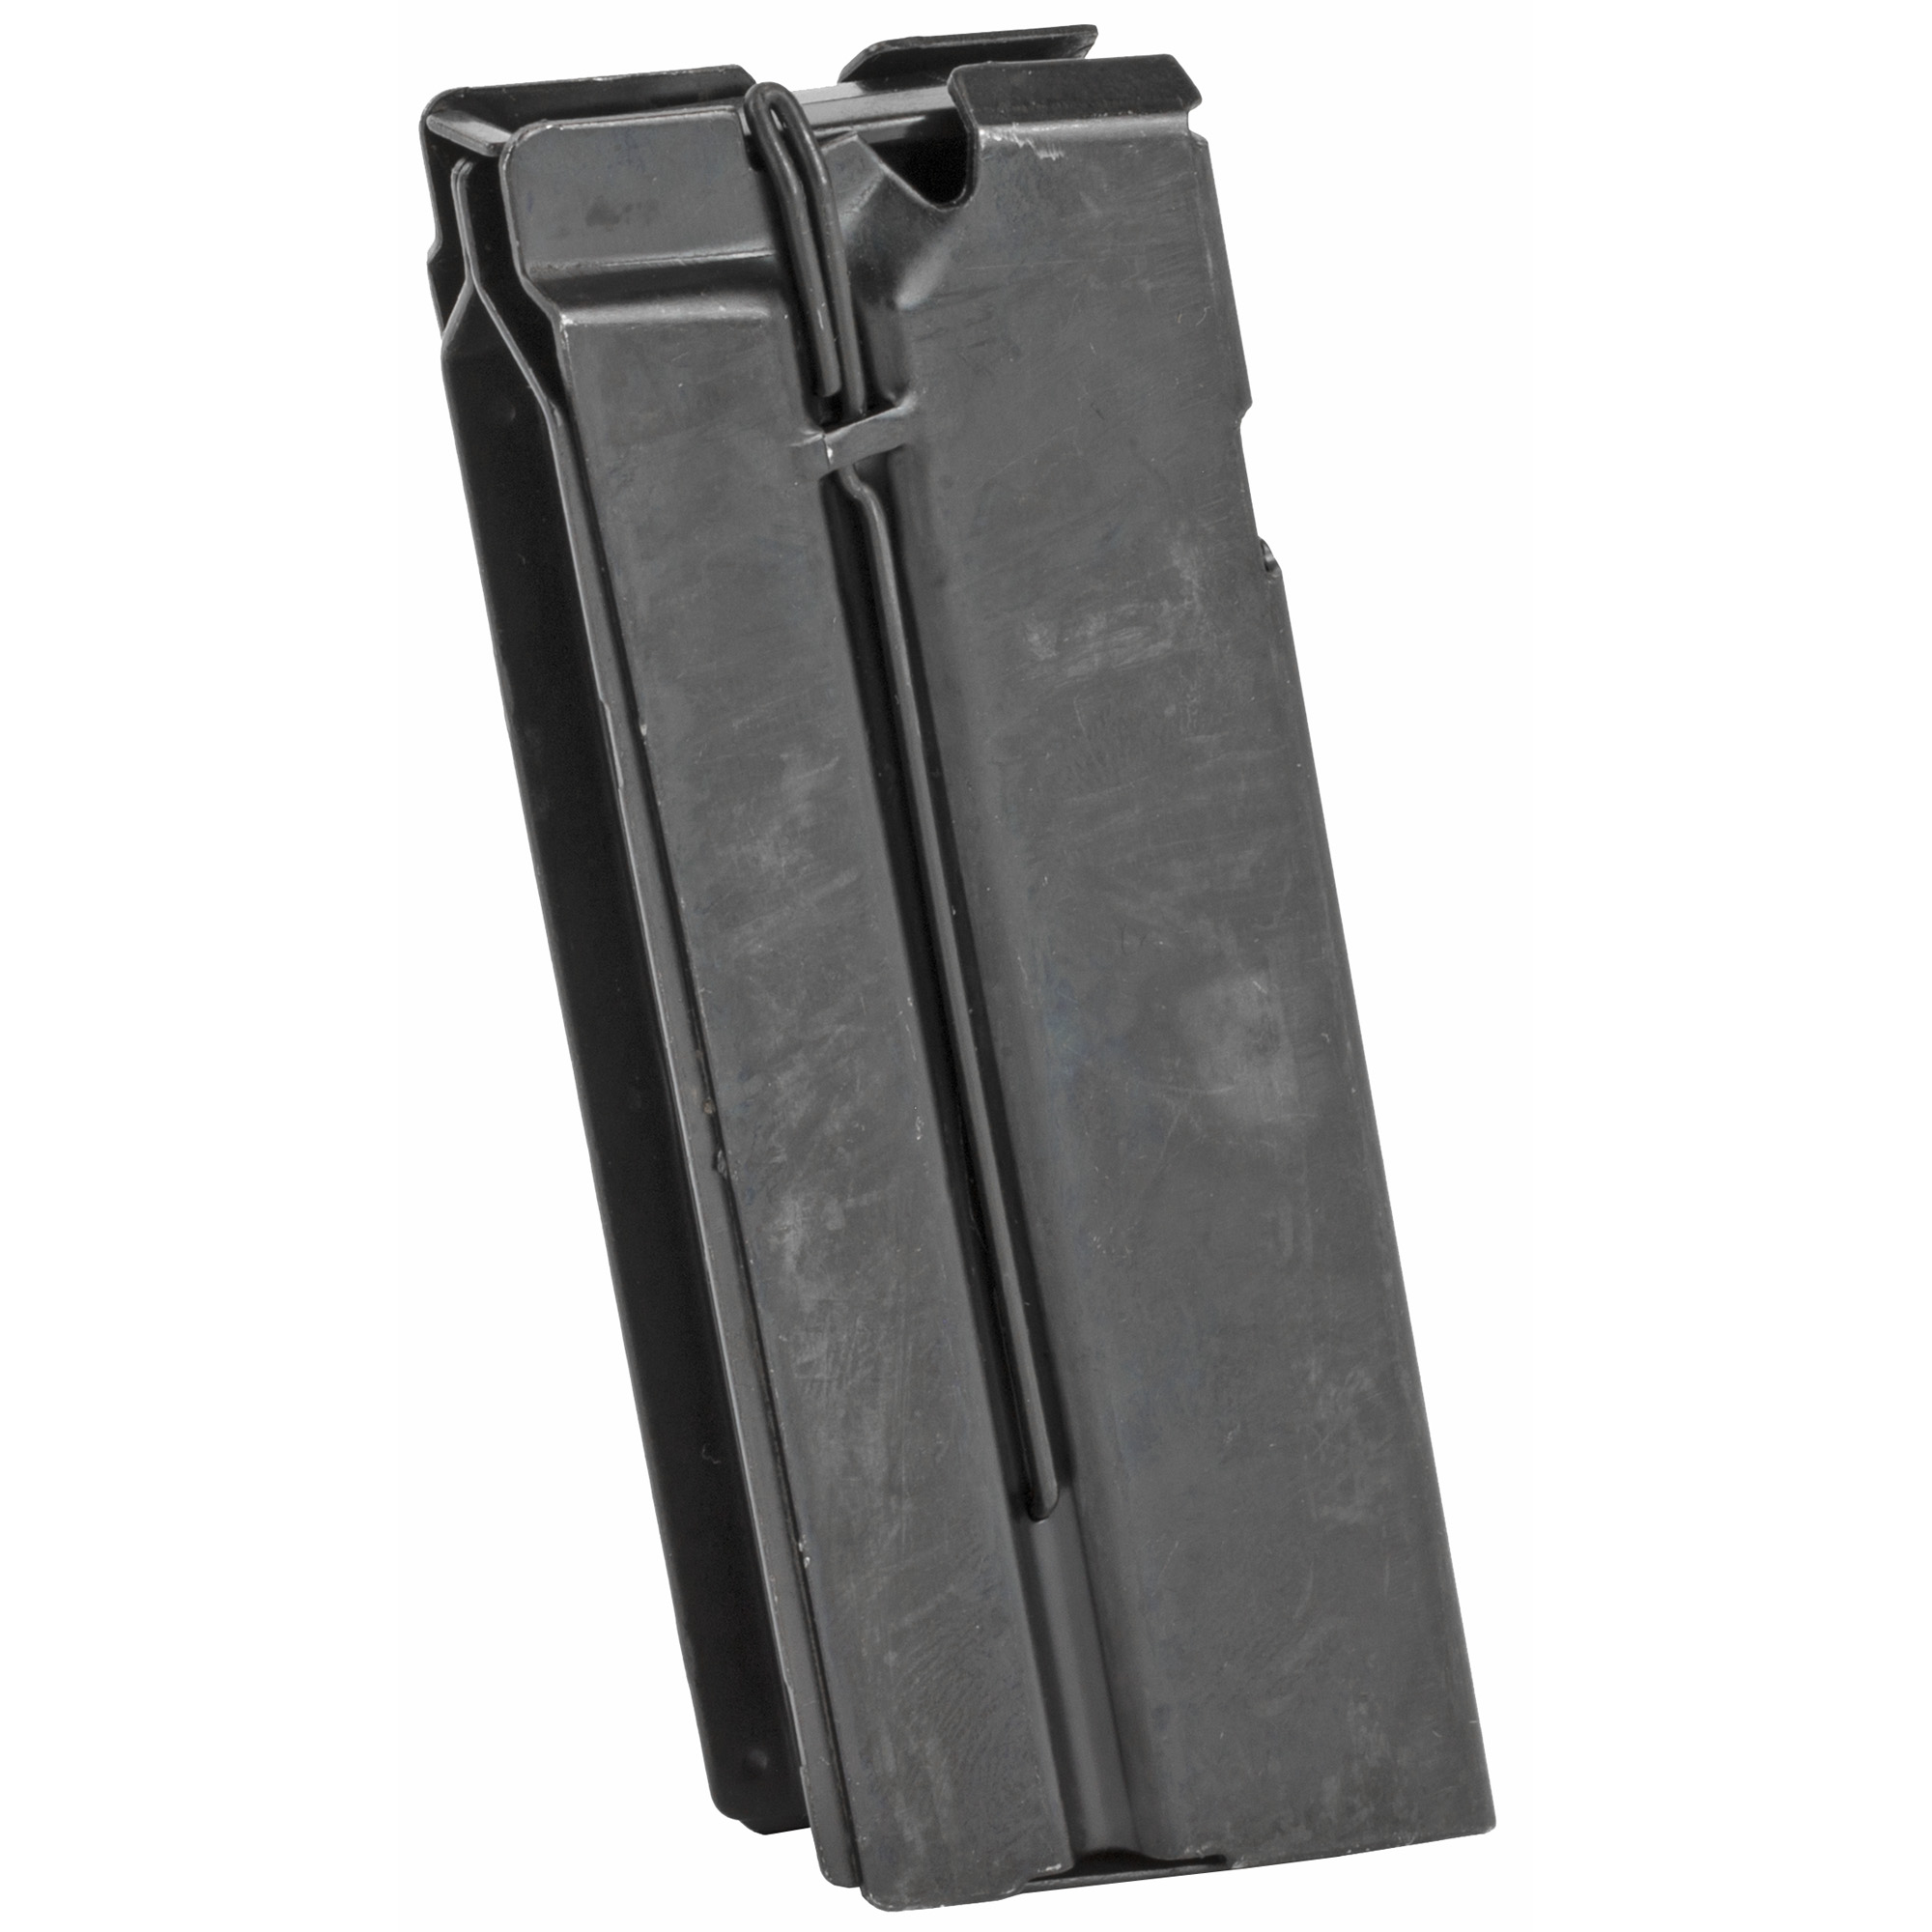 This Henry Survival Rifle magazine features durable steel construction that will ensure a lifetime of flawless function and reliability.